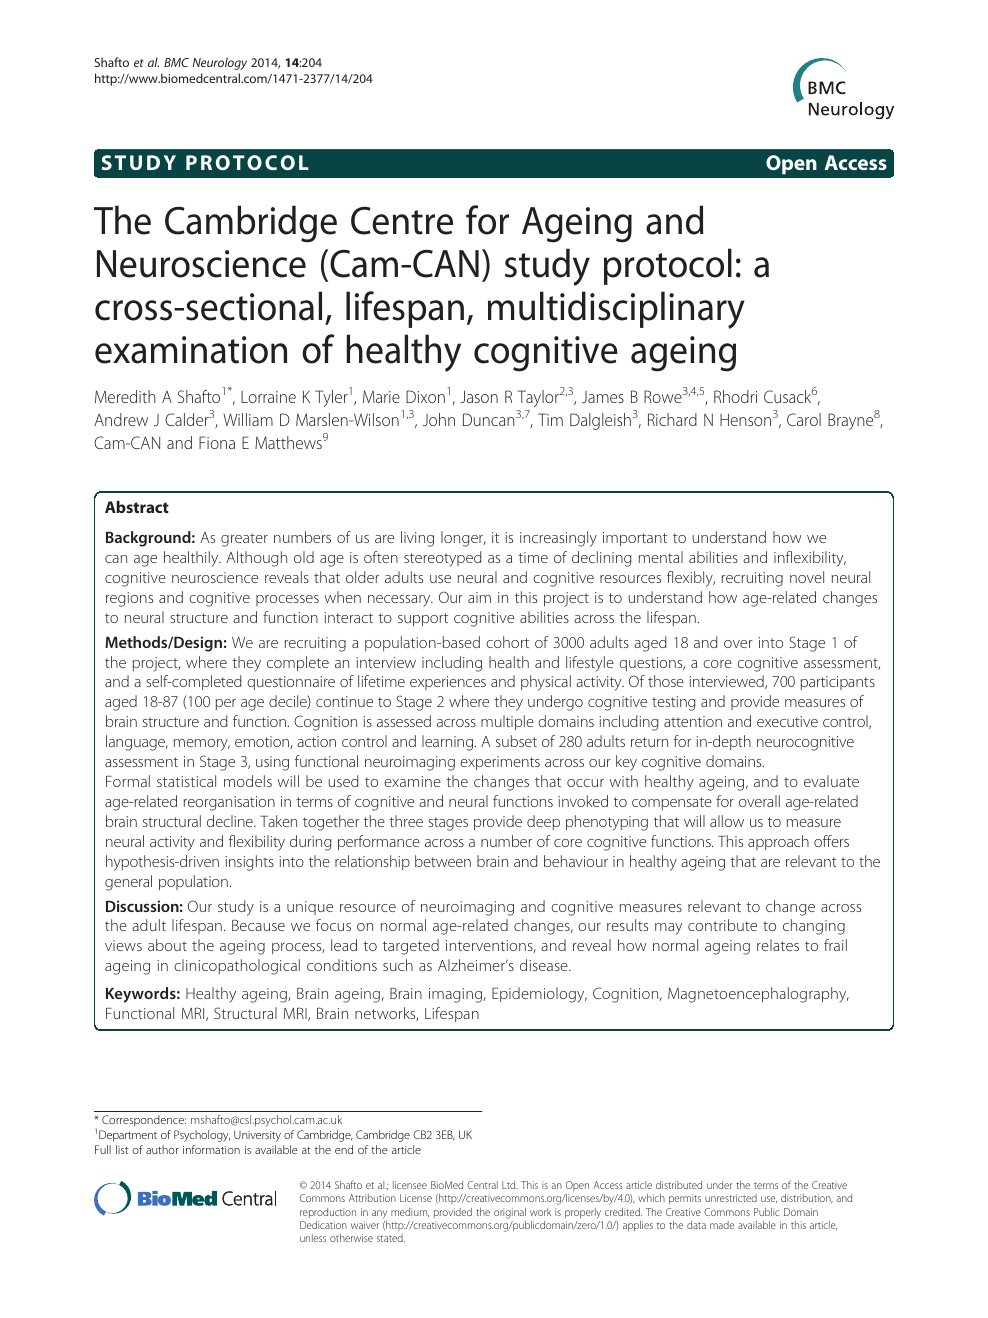 The Cambridge Centre for Ageing and Neuroscience (Cam-CAN